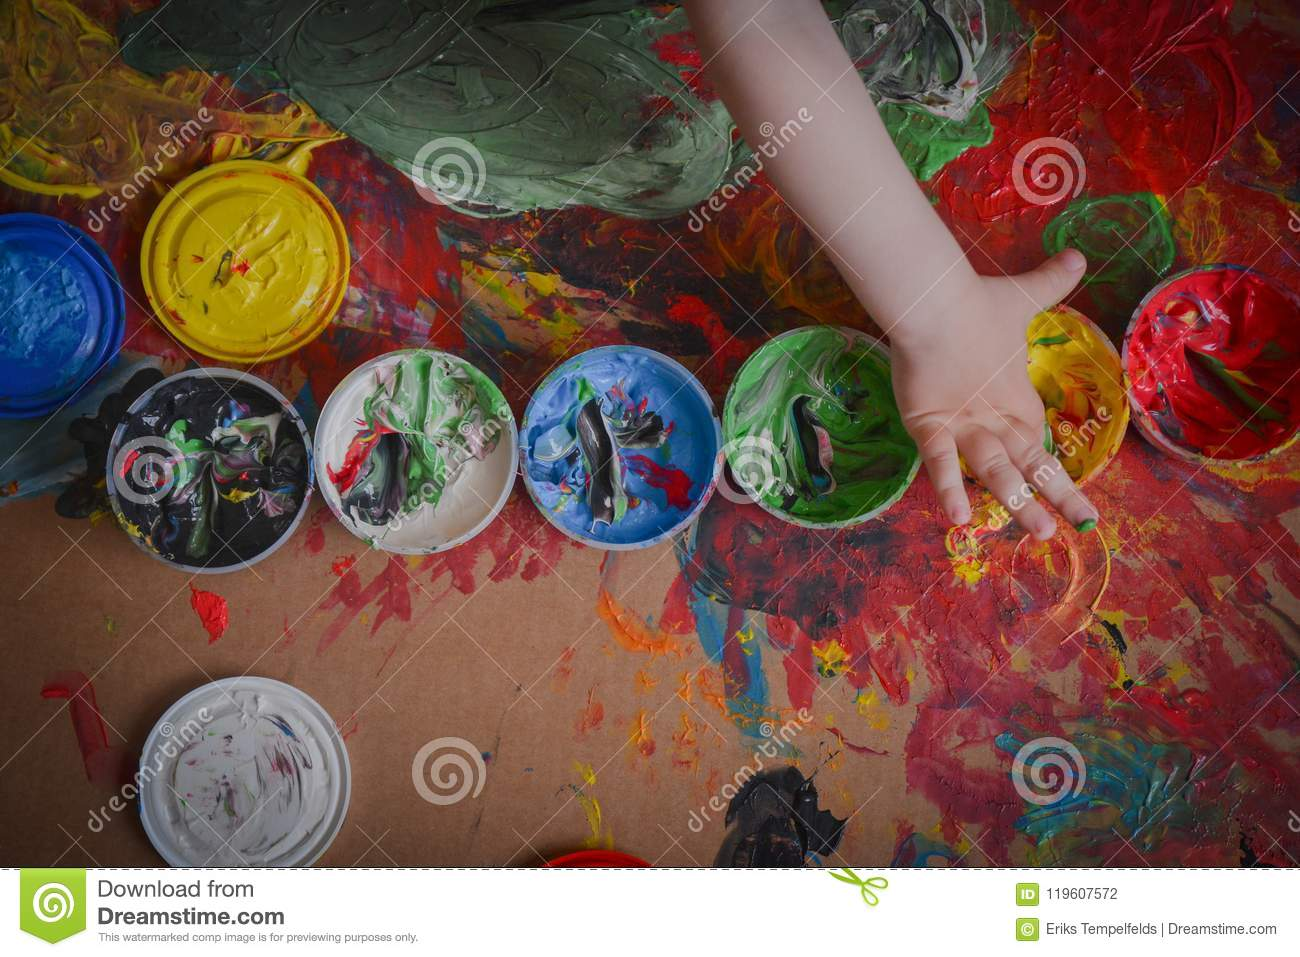 Painted in bright colors with baby hand or fingers